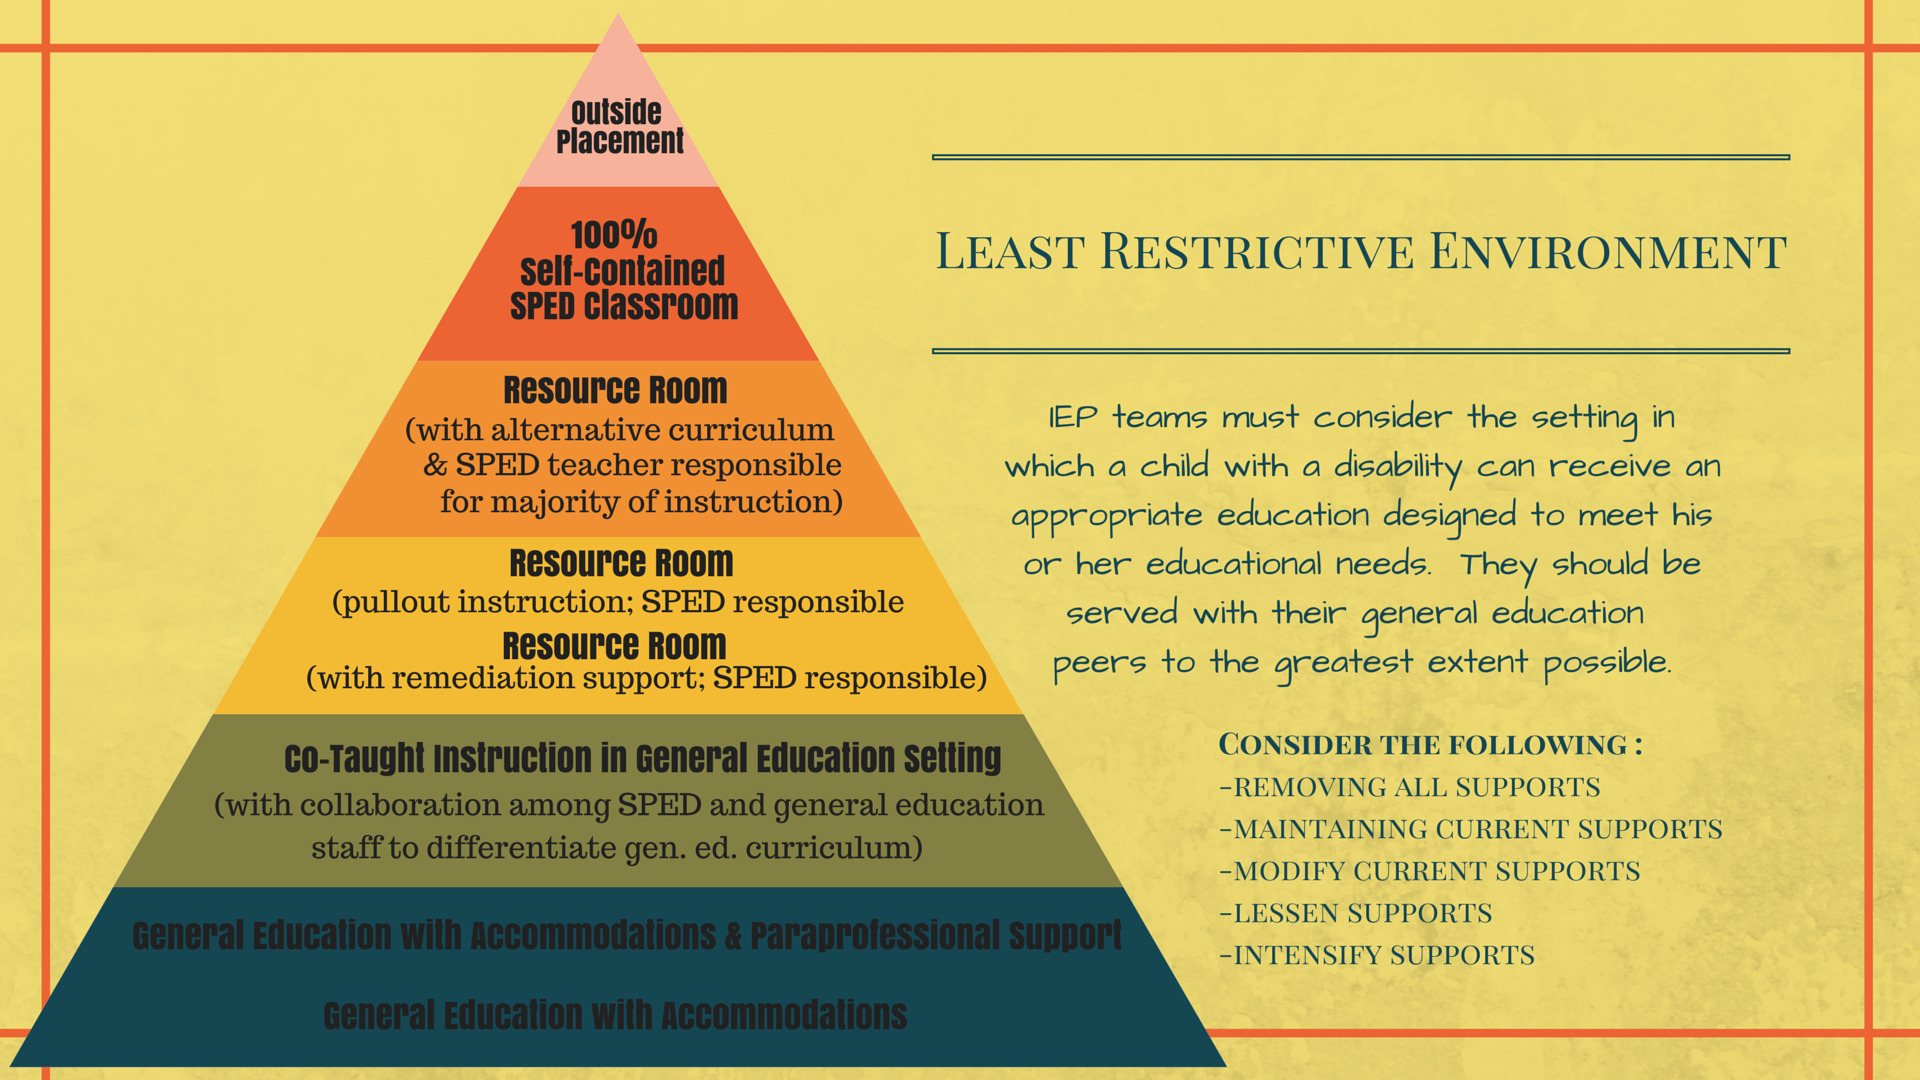 research papers on least restrictive environment The least restrictive environment (lre) requirement is often referred to as mainstreaming  letters & paper trails lre/inclusion mediation  research based.